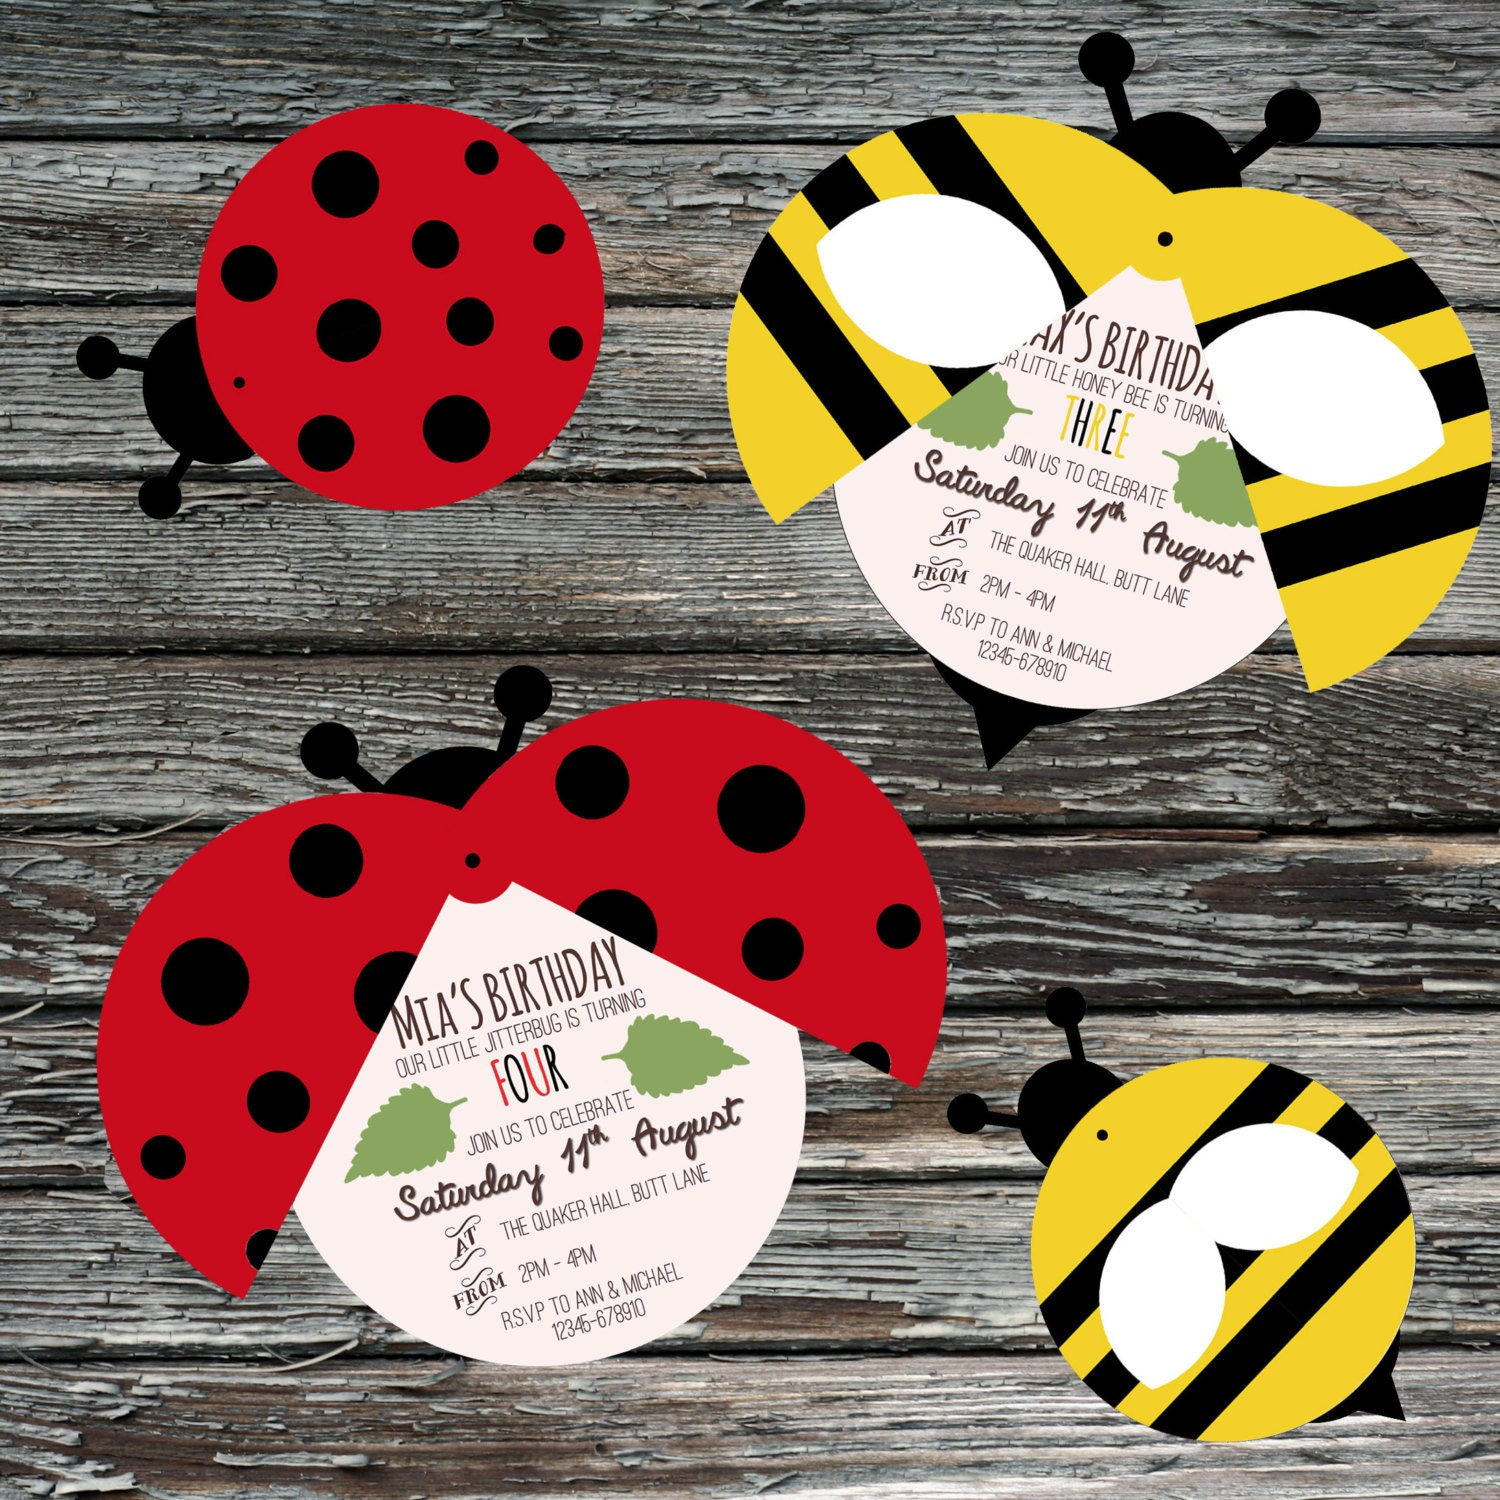 Personalised Ladybird and Bumble Bee invites with moving wings | Etsy